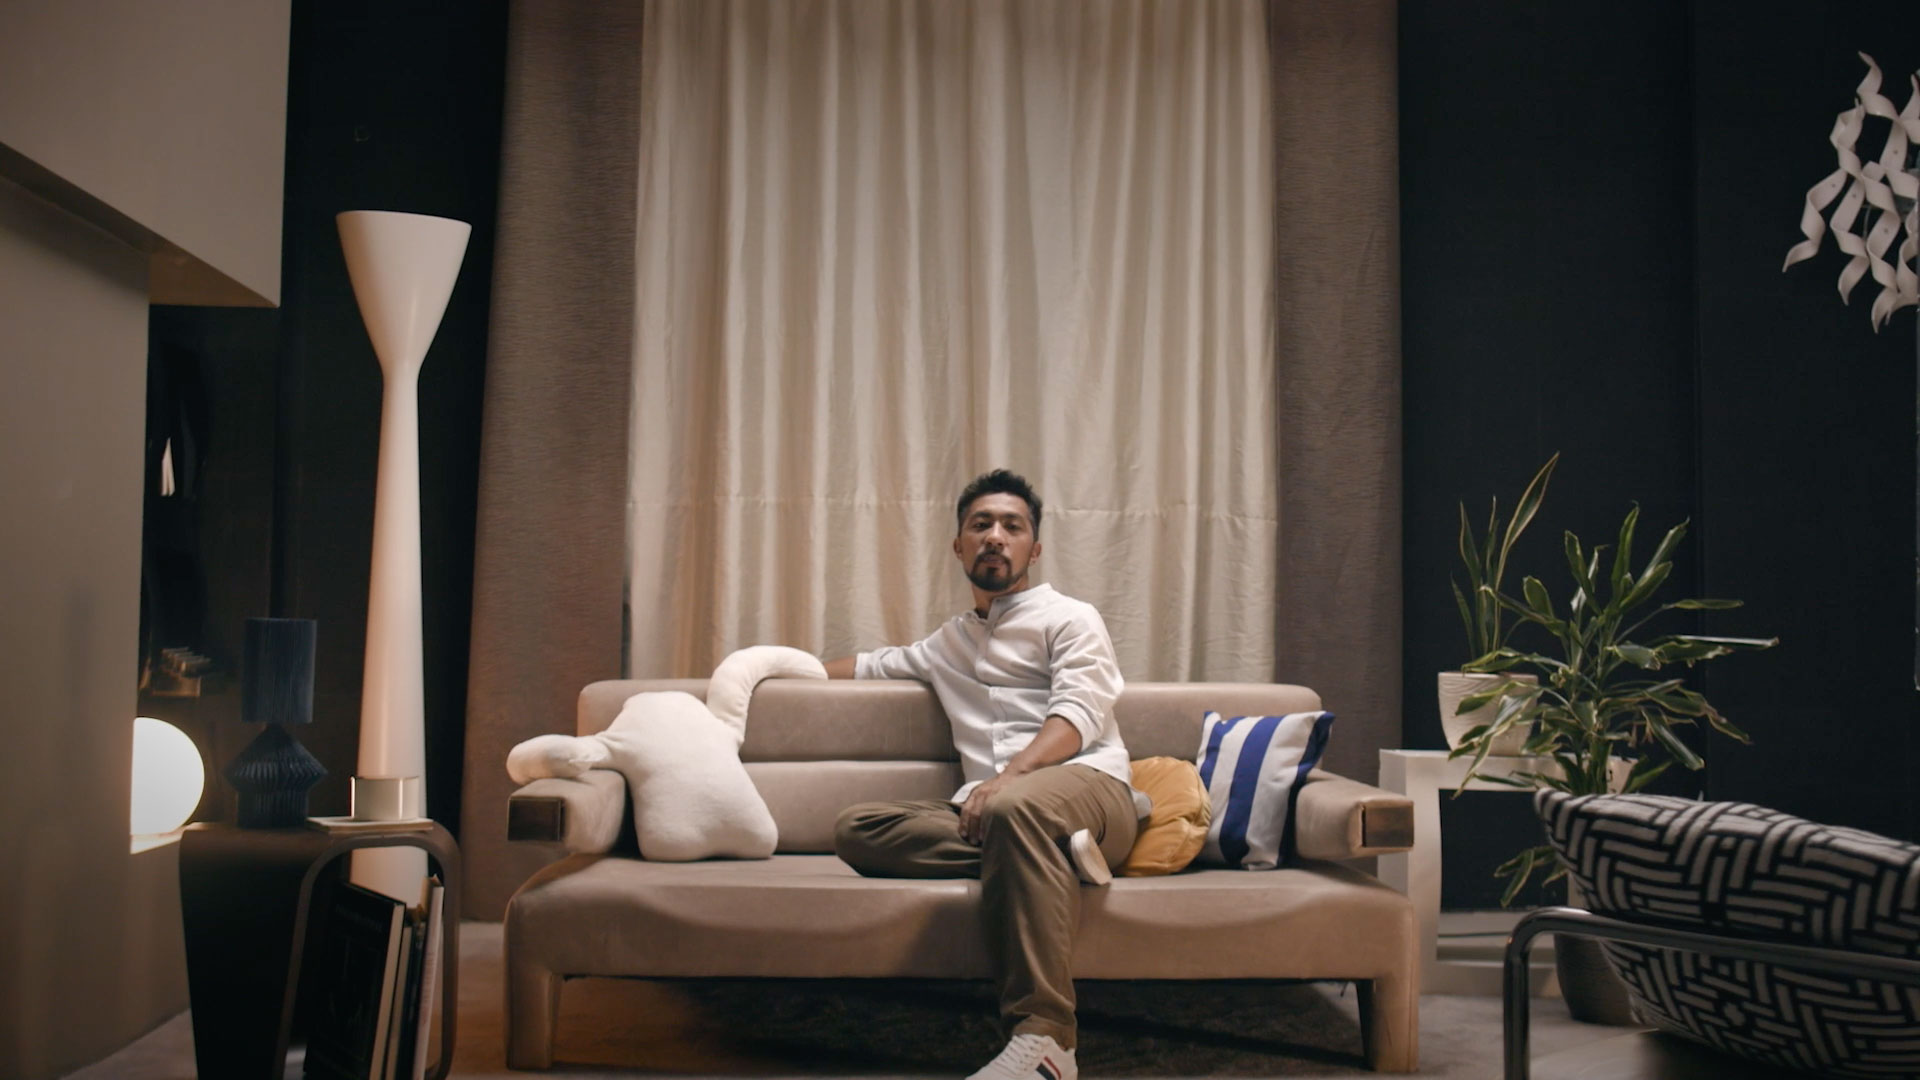 Grundig - Home smart home - La casa del futuro - Produzione video - Branded Content